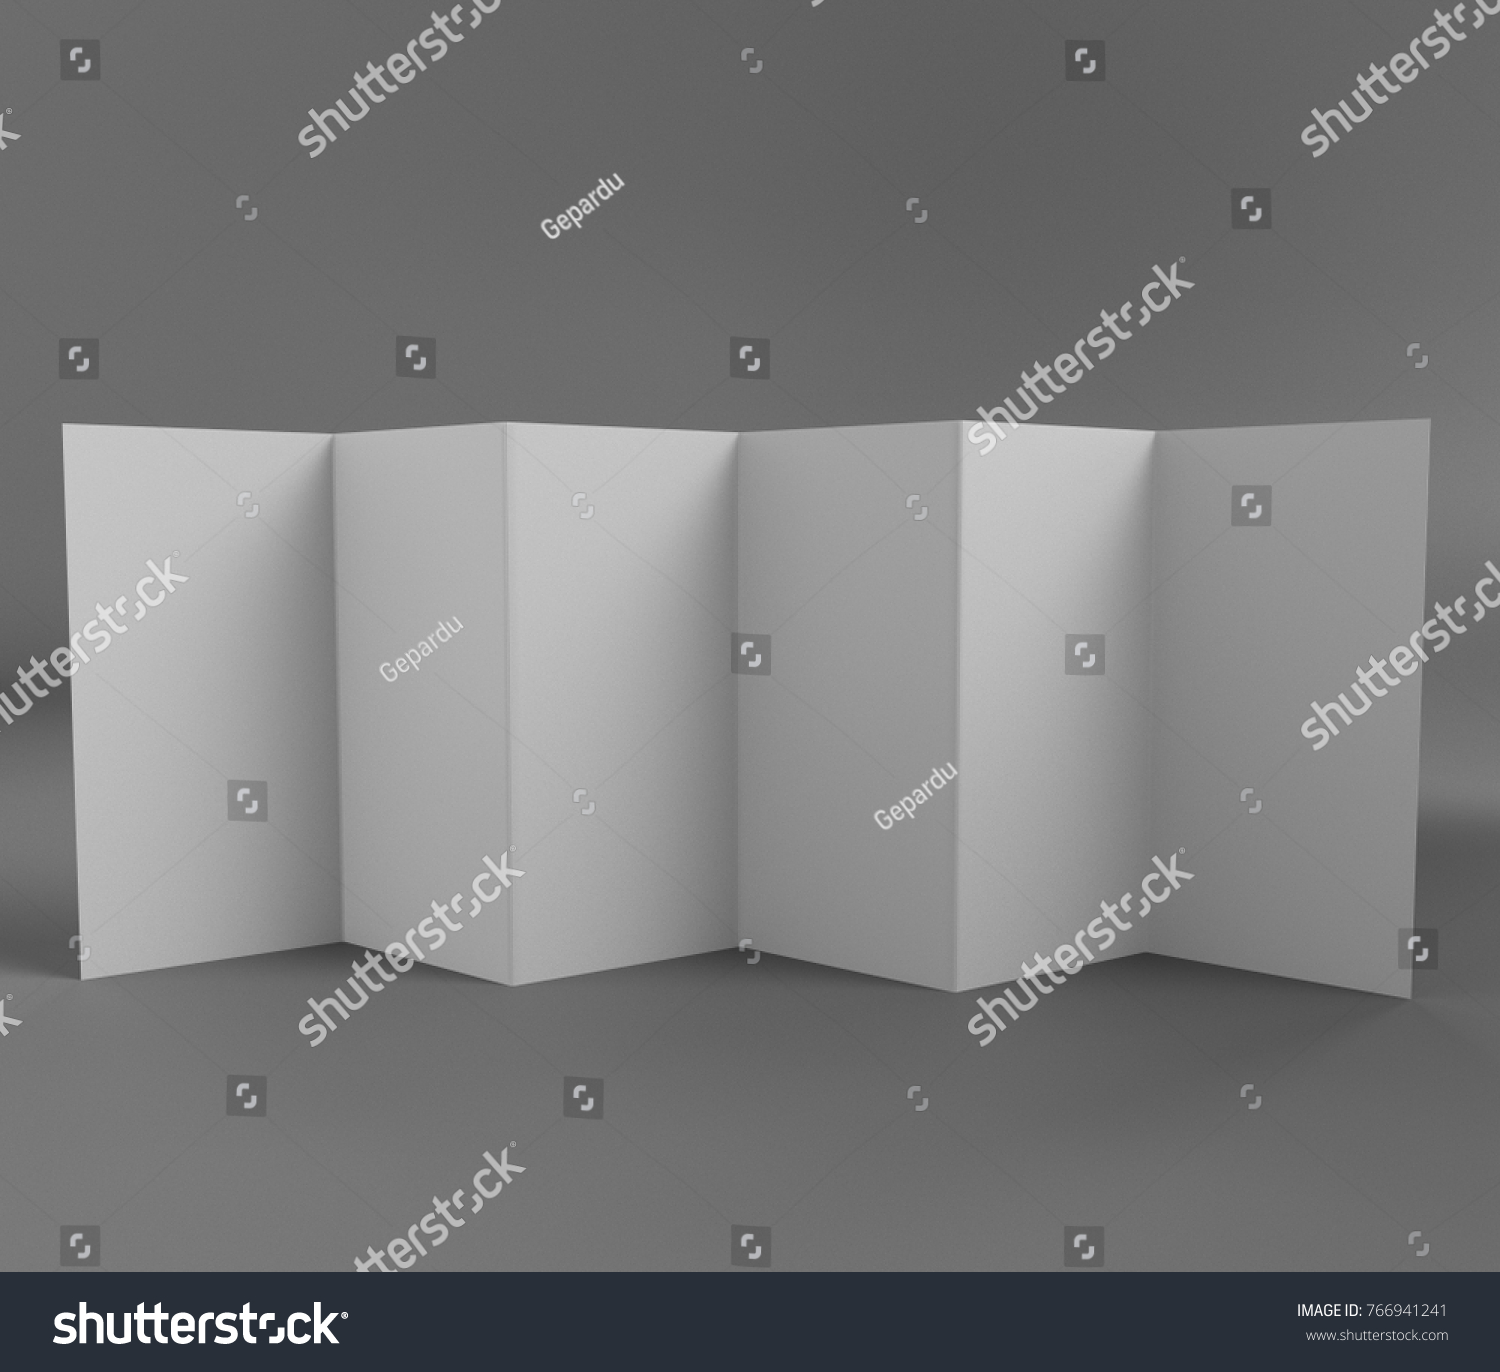 Zfold Brochure Leaflet Flyer Template D Stock Illustration - Z fold brochure template